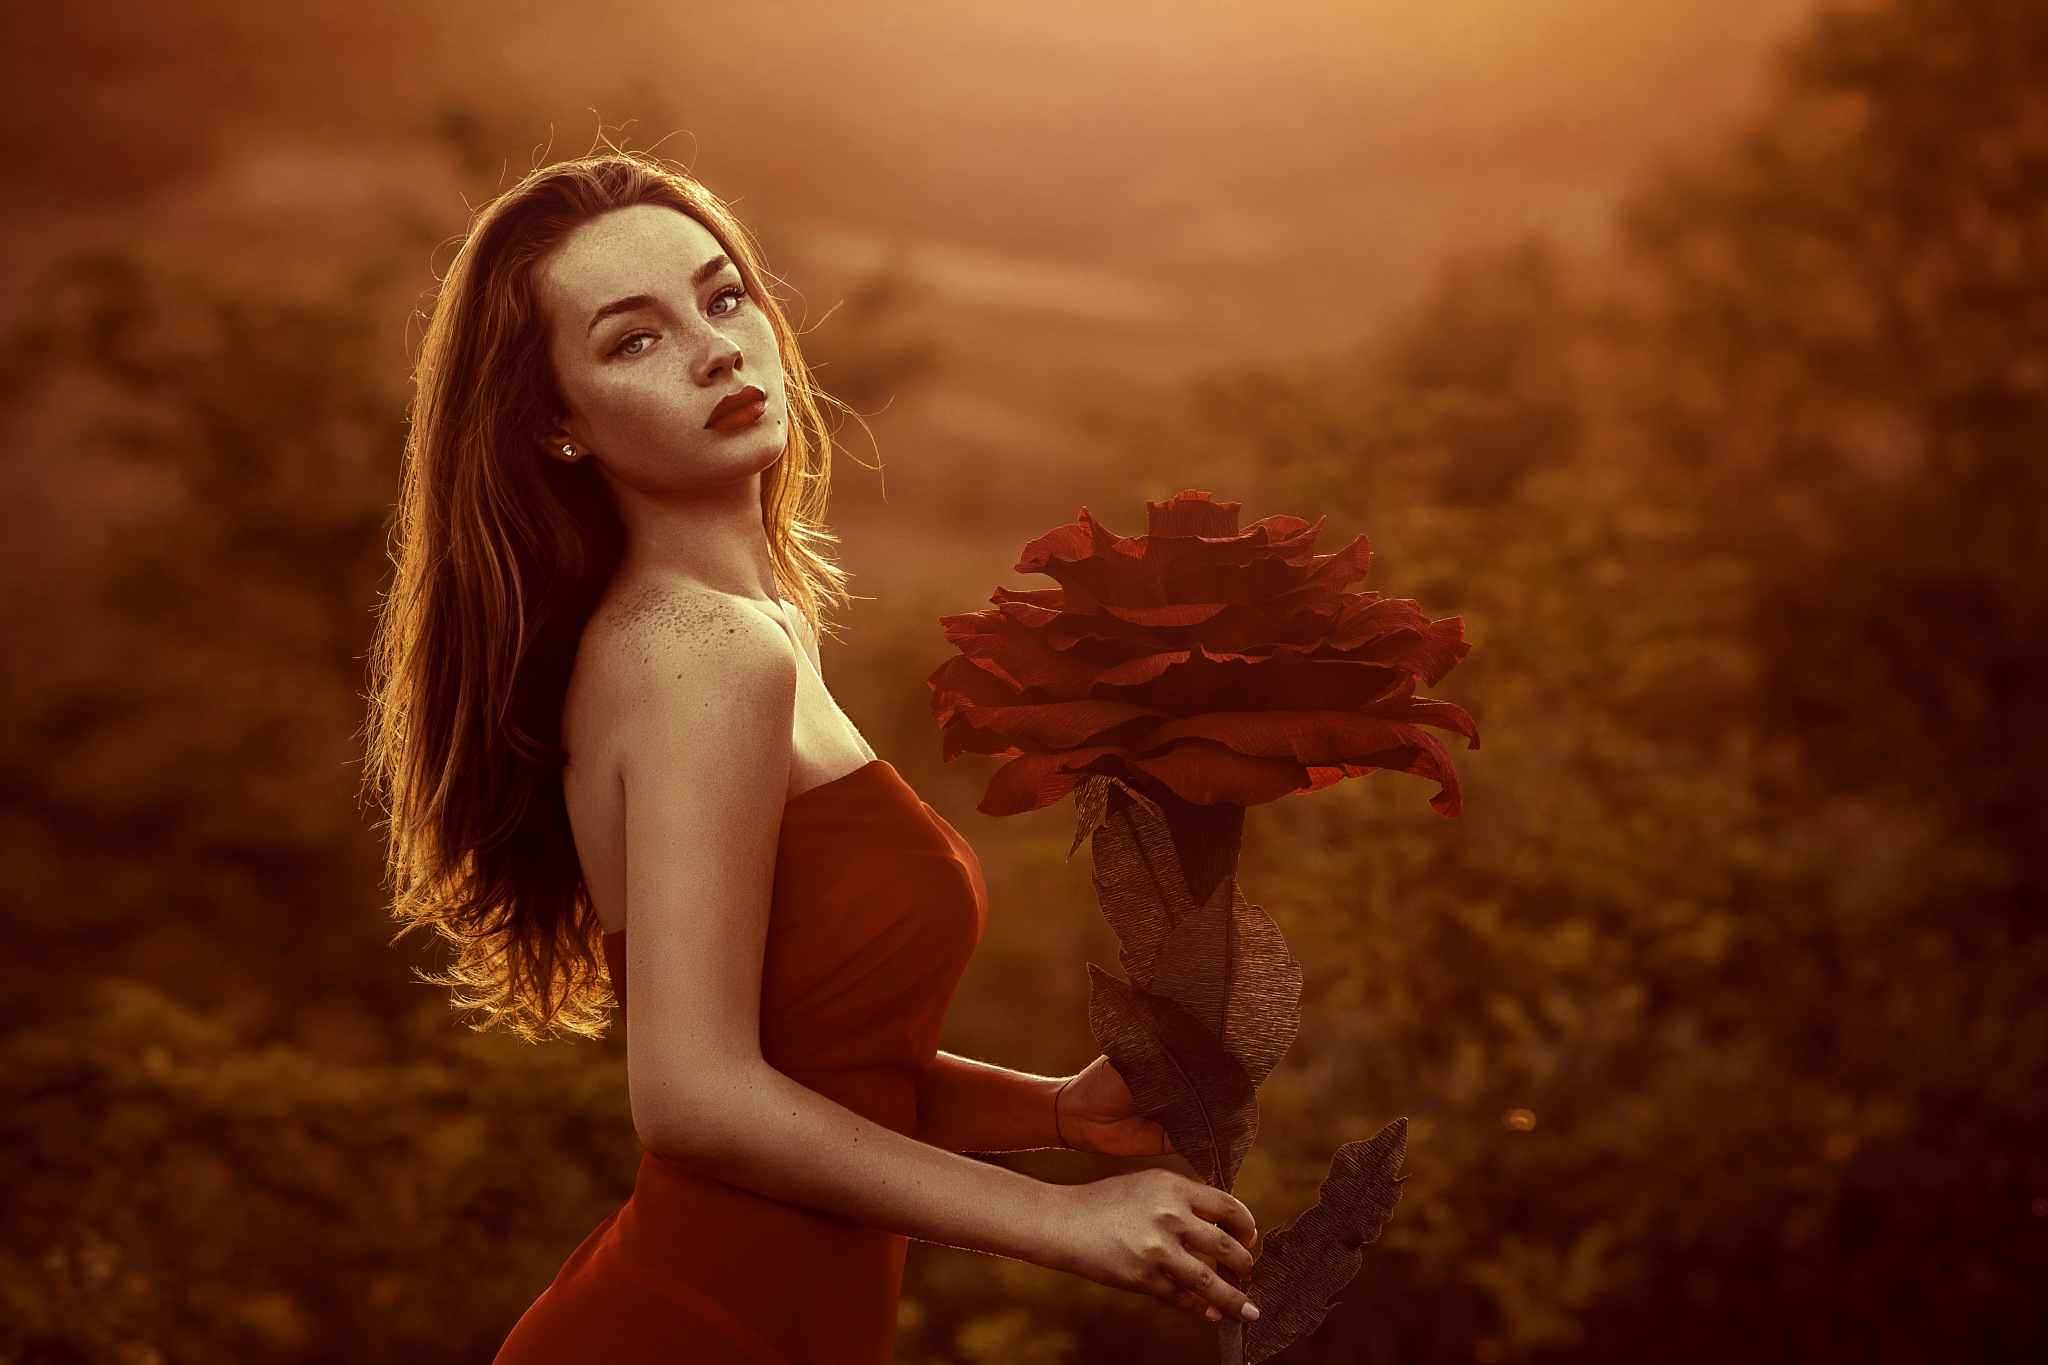 Lady of the flowers by Alexey Vladimir